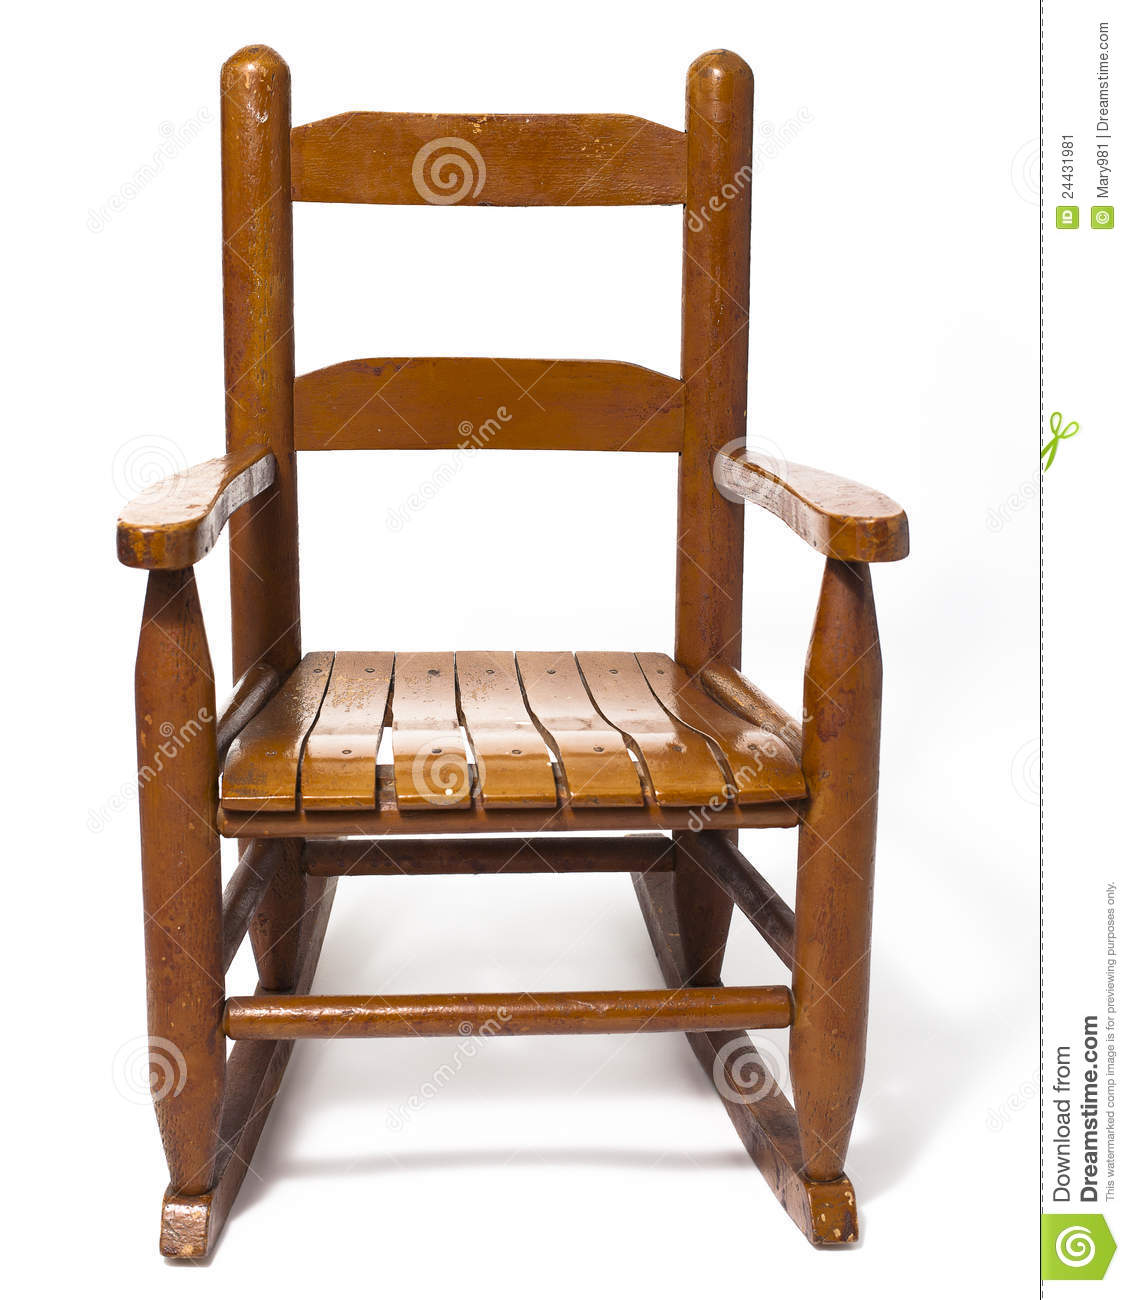 childs wooden rocking chair yoga workout white stock image - image: 24431981